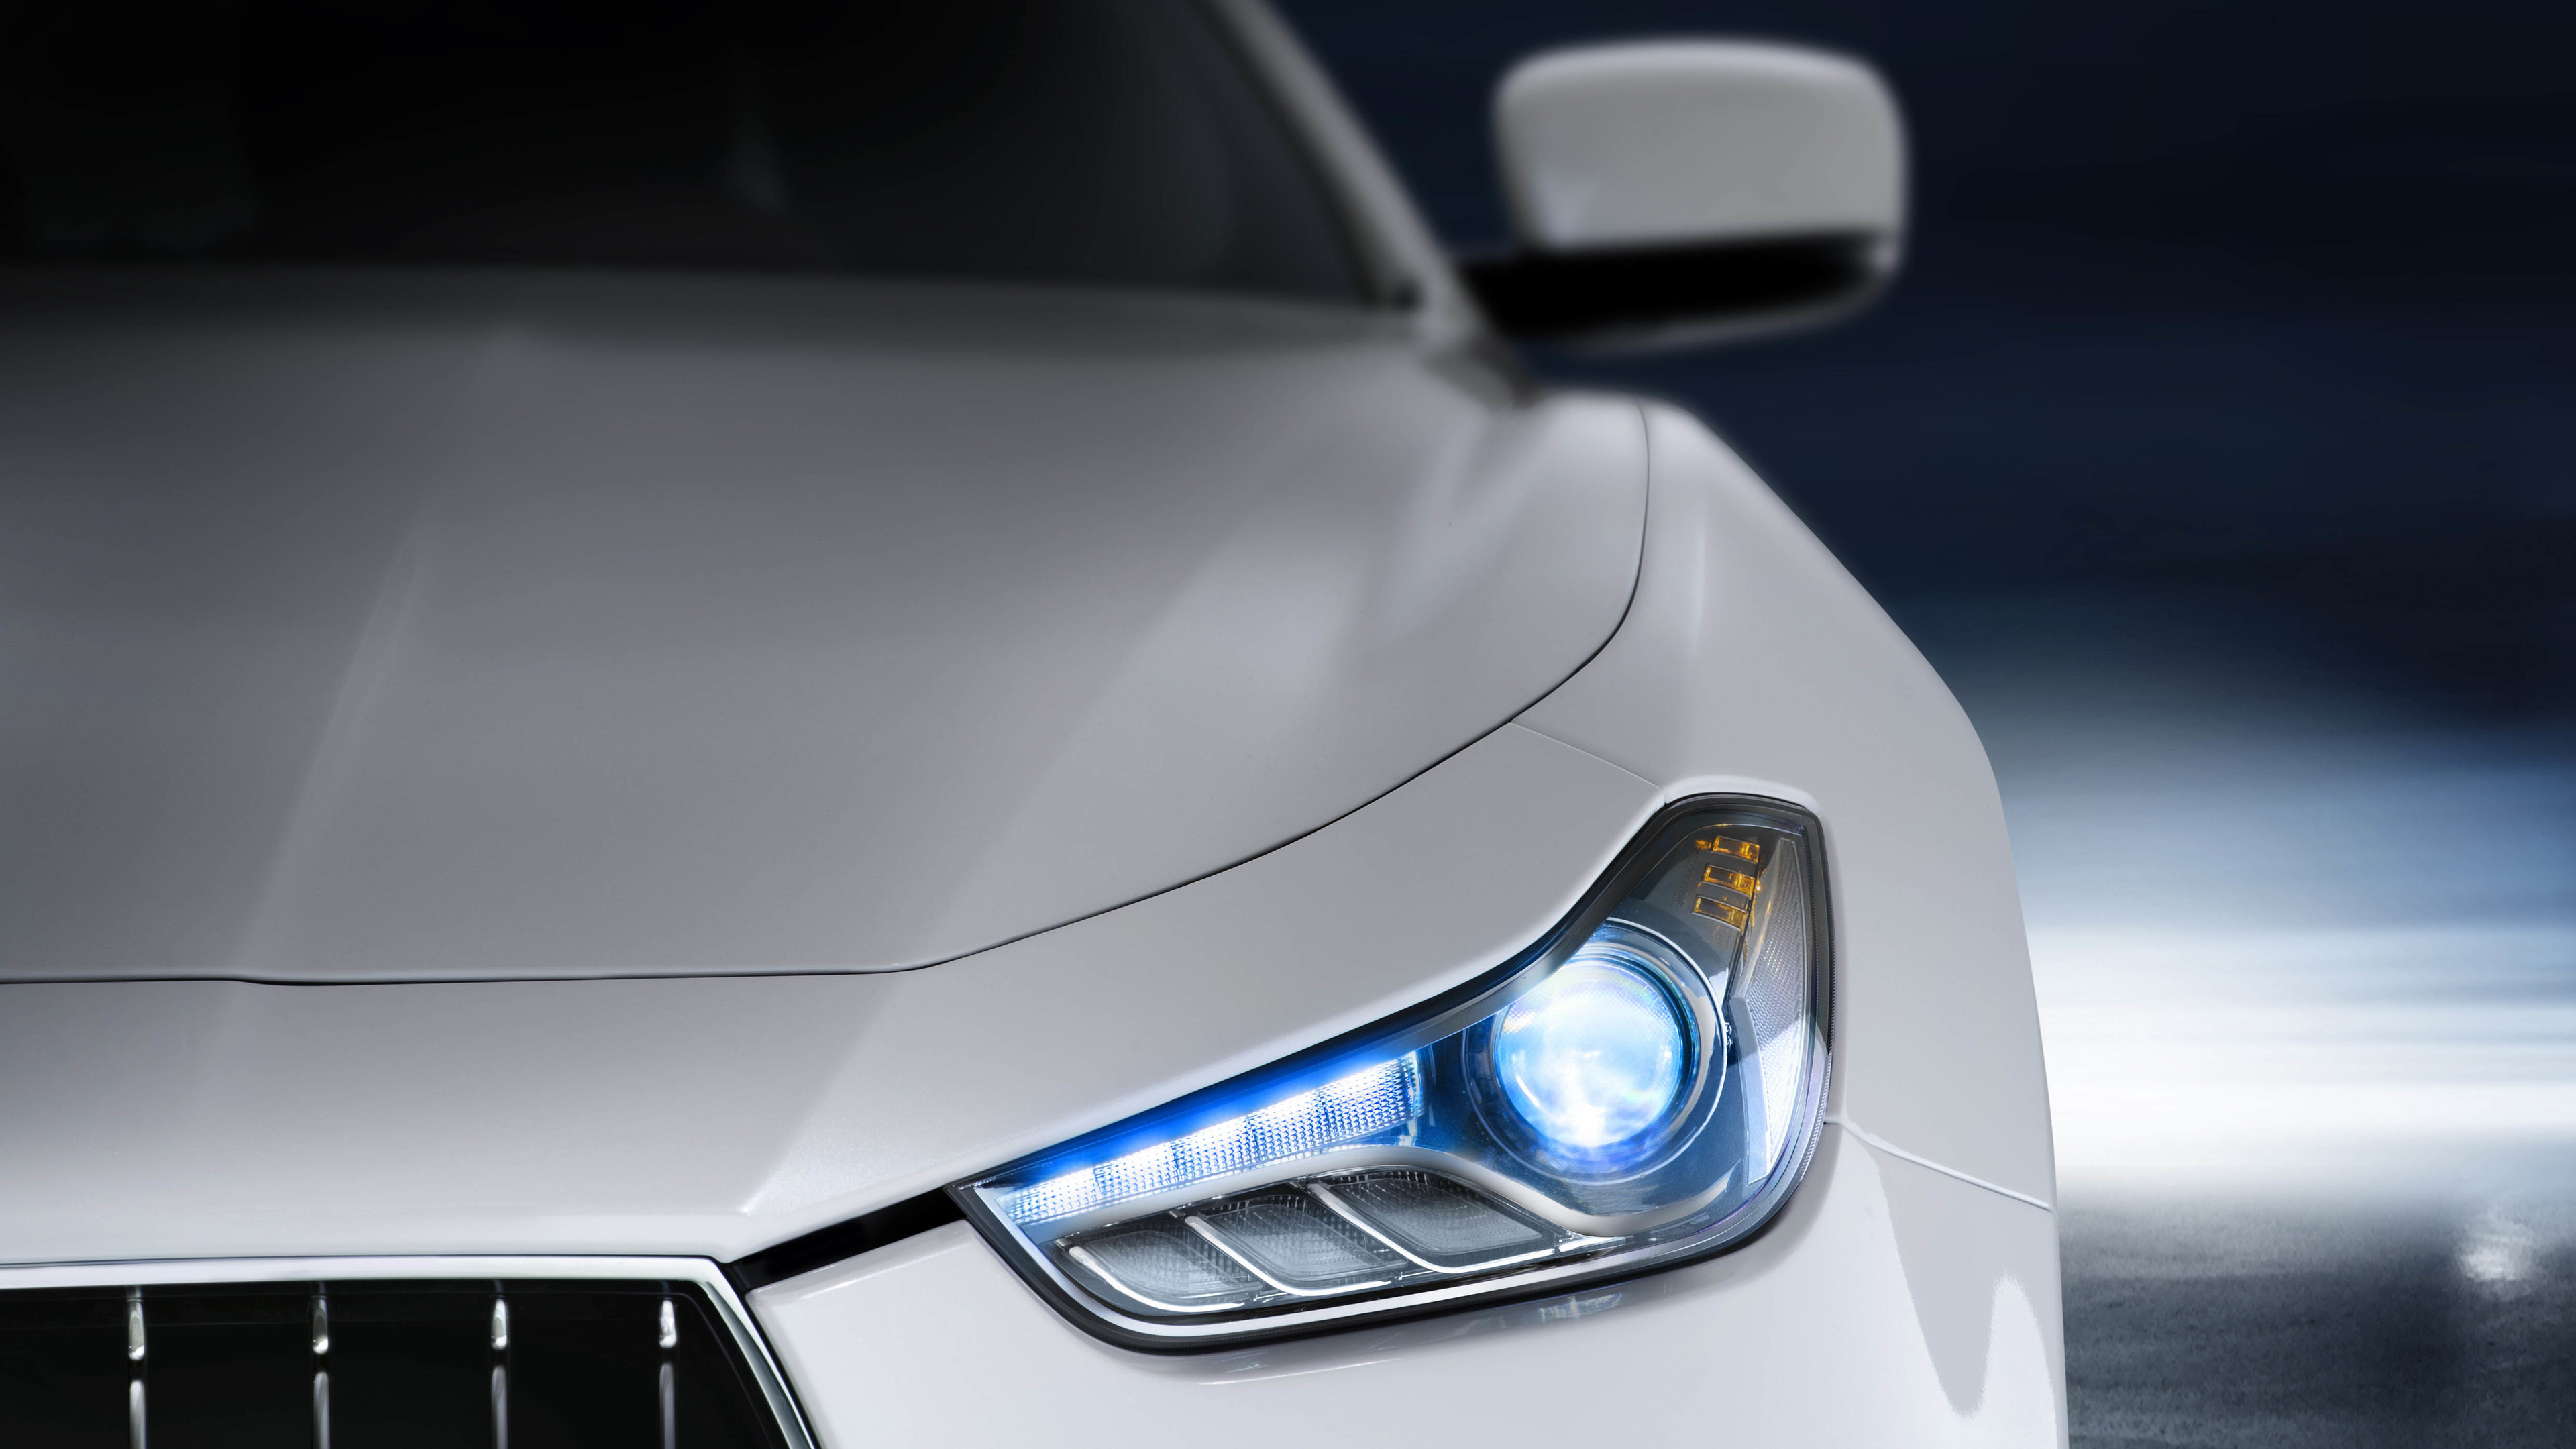 maserati headlights 1539104502 - Maserati Headlights - lights wallpapers, cars wallpapers